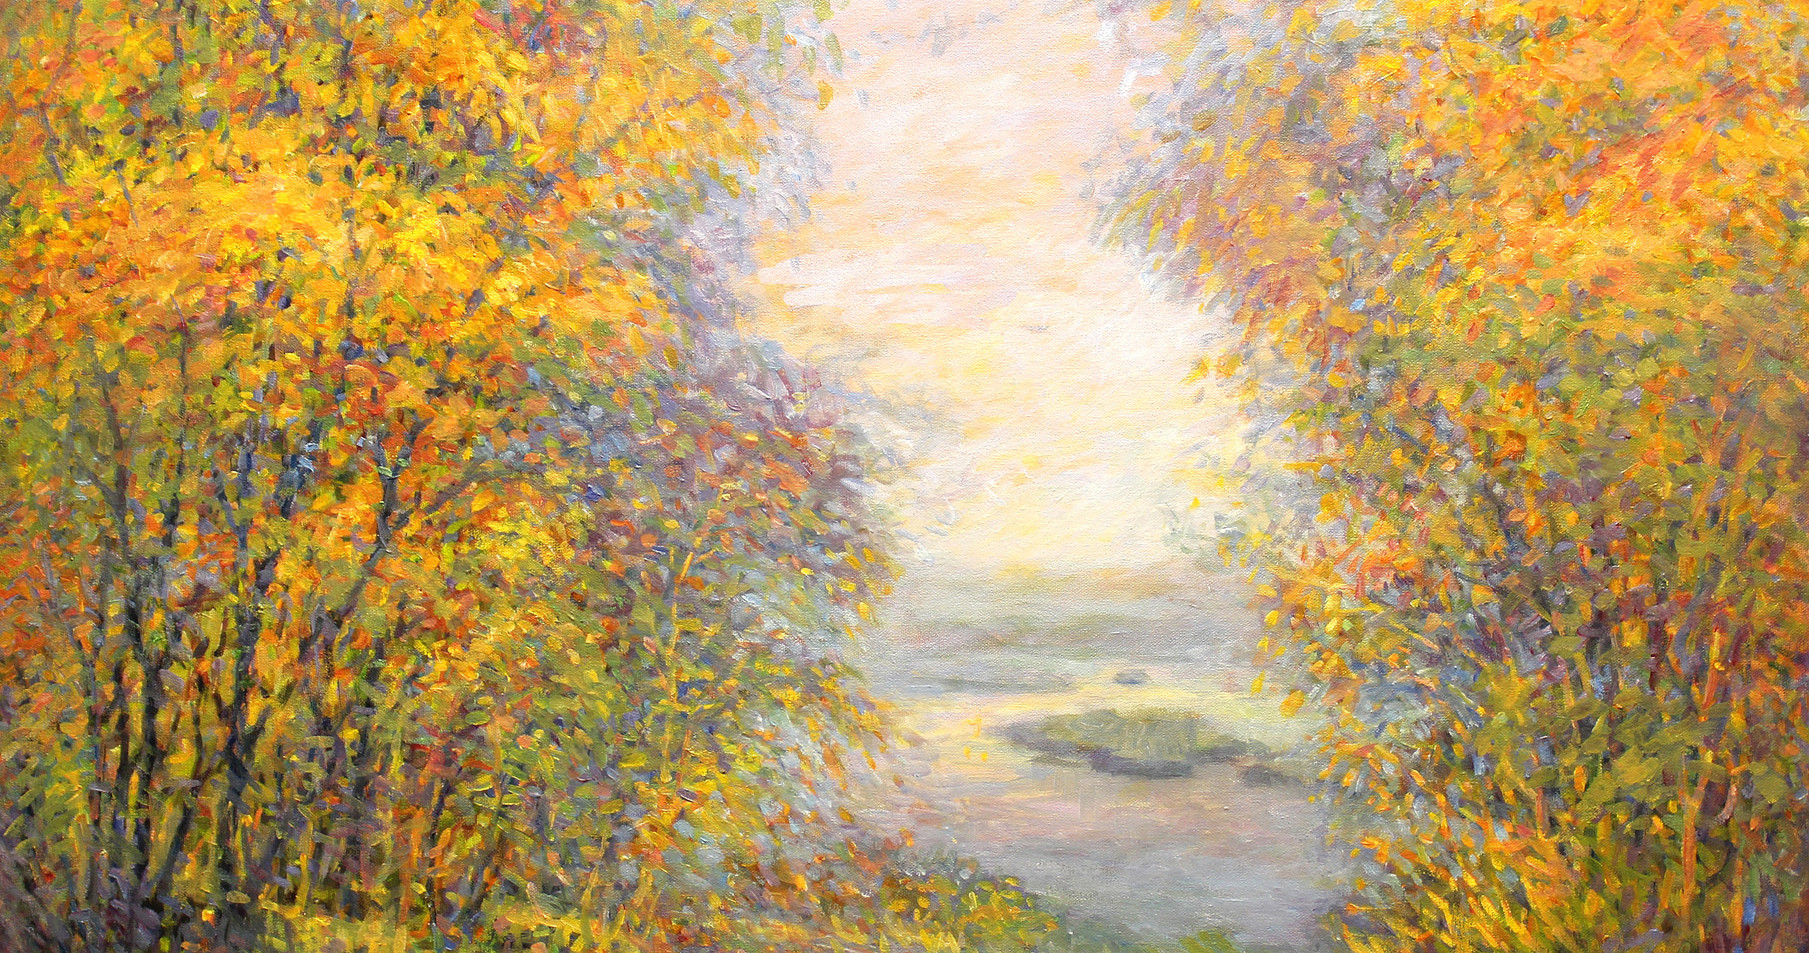 River Vista 24 x 36 oil